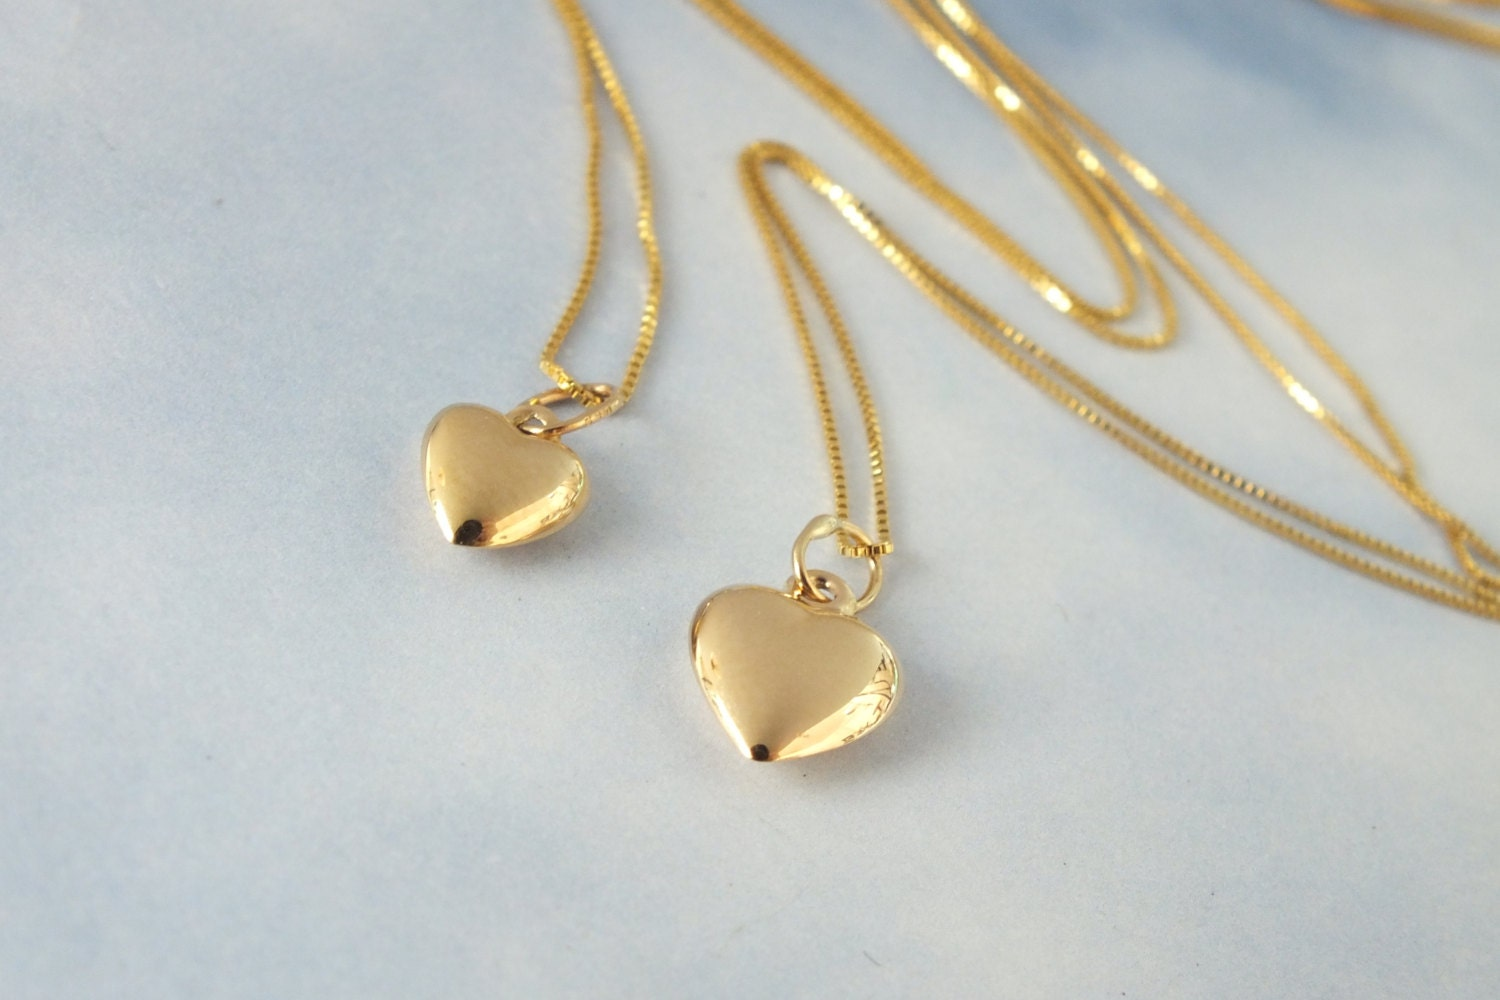 fbe4765127c1 2 Gold Heart Necklace Mother and Daughter Solid 14k Gold